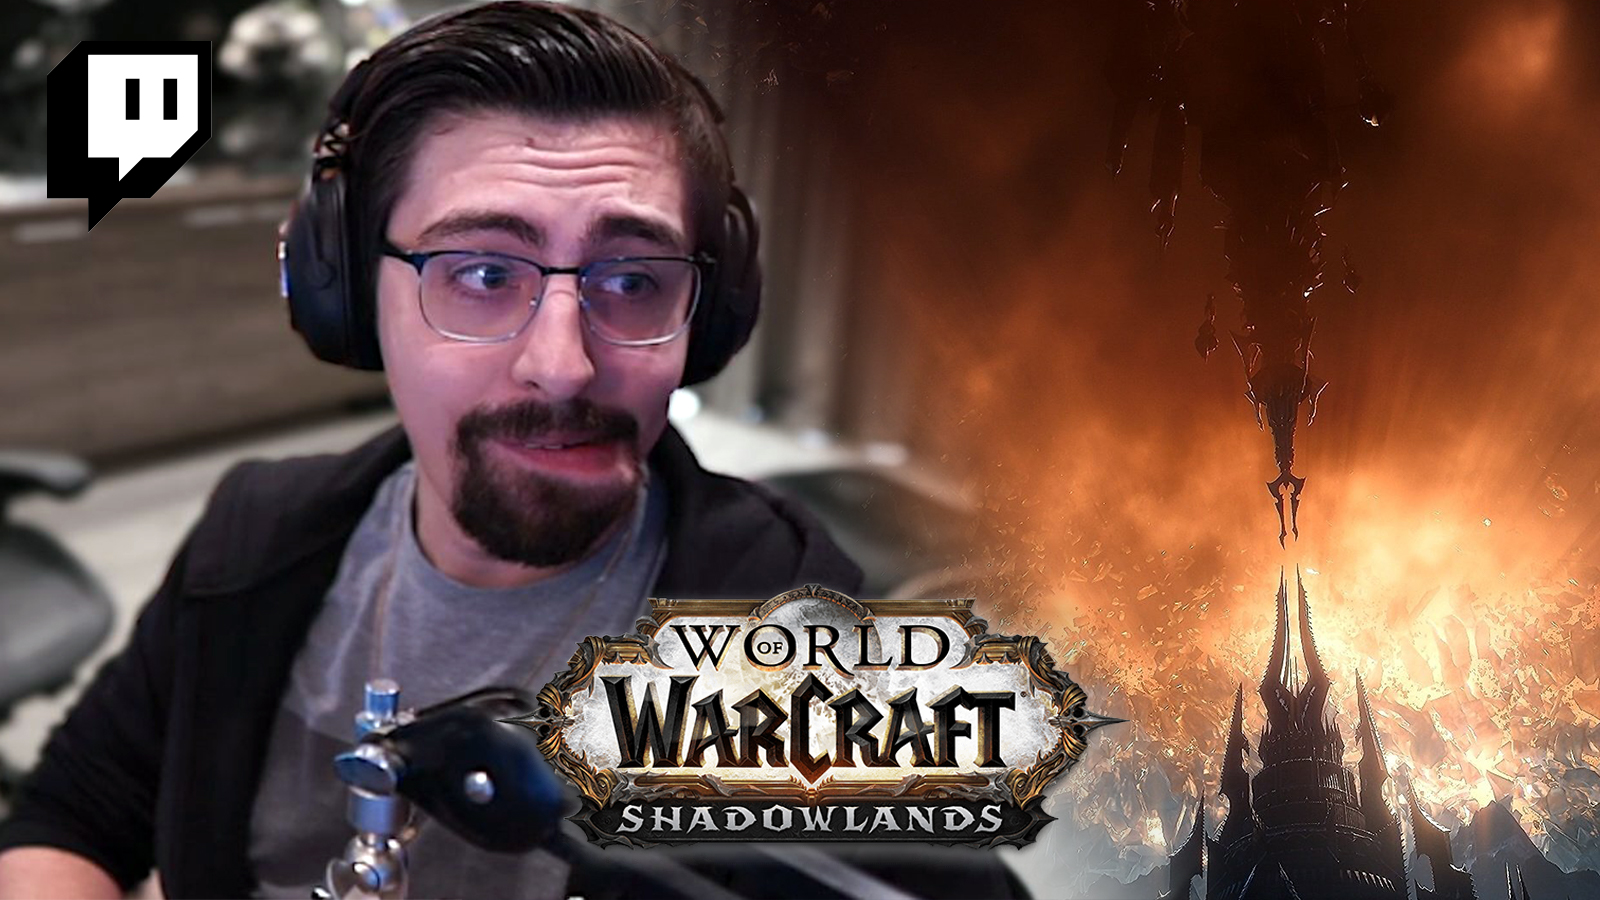 Shroud World of Warcraft Shadowlands